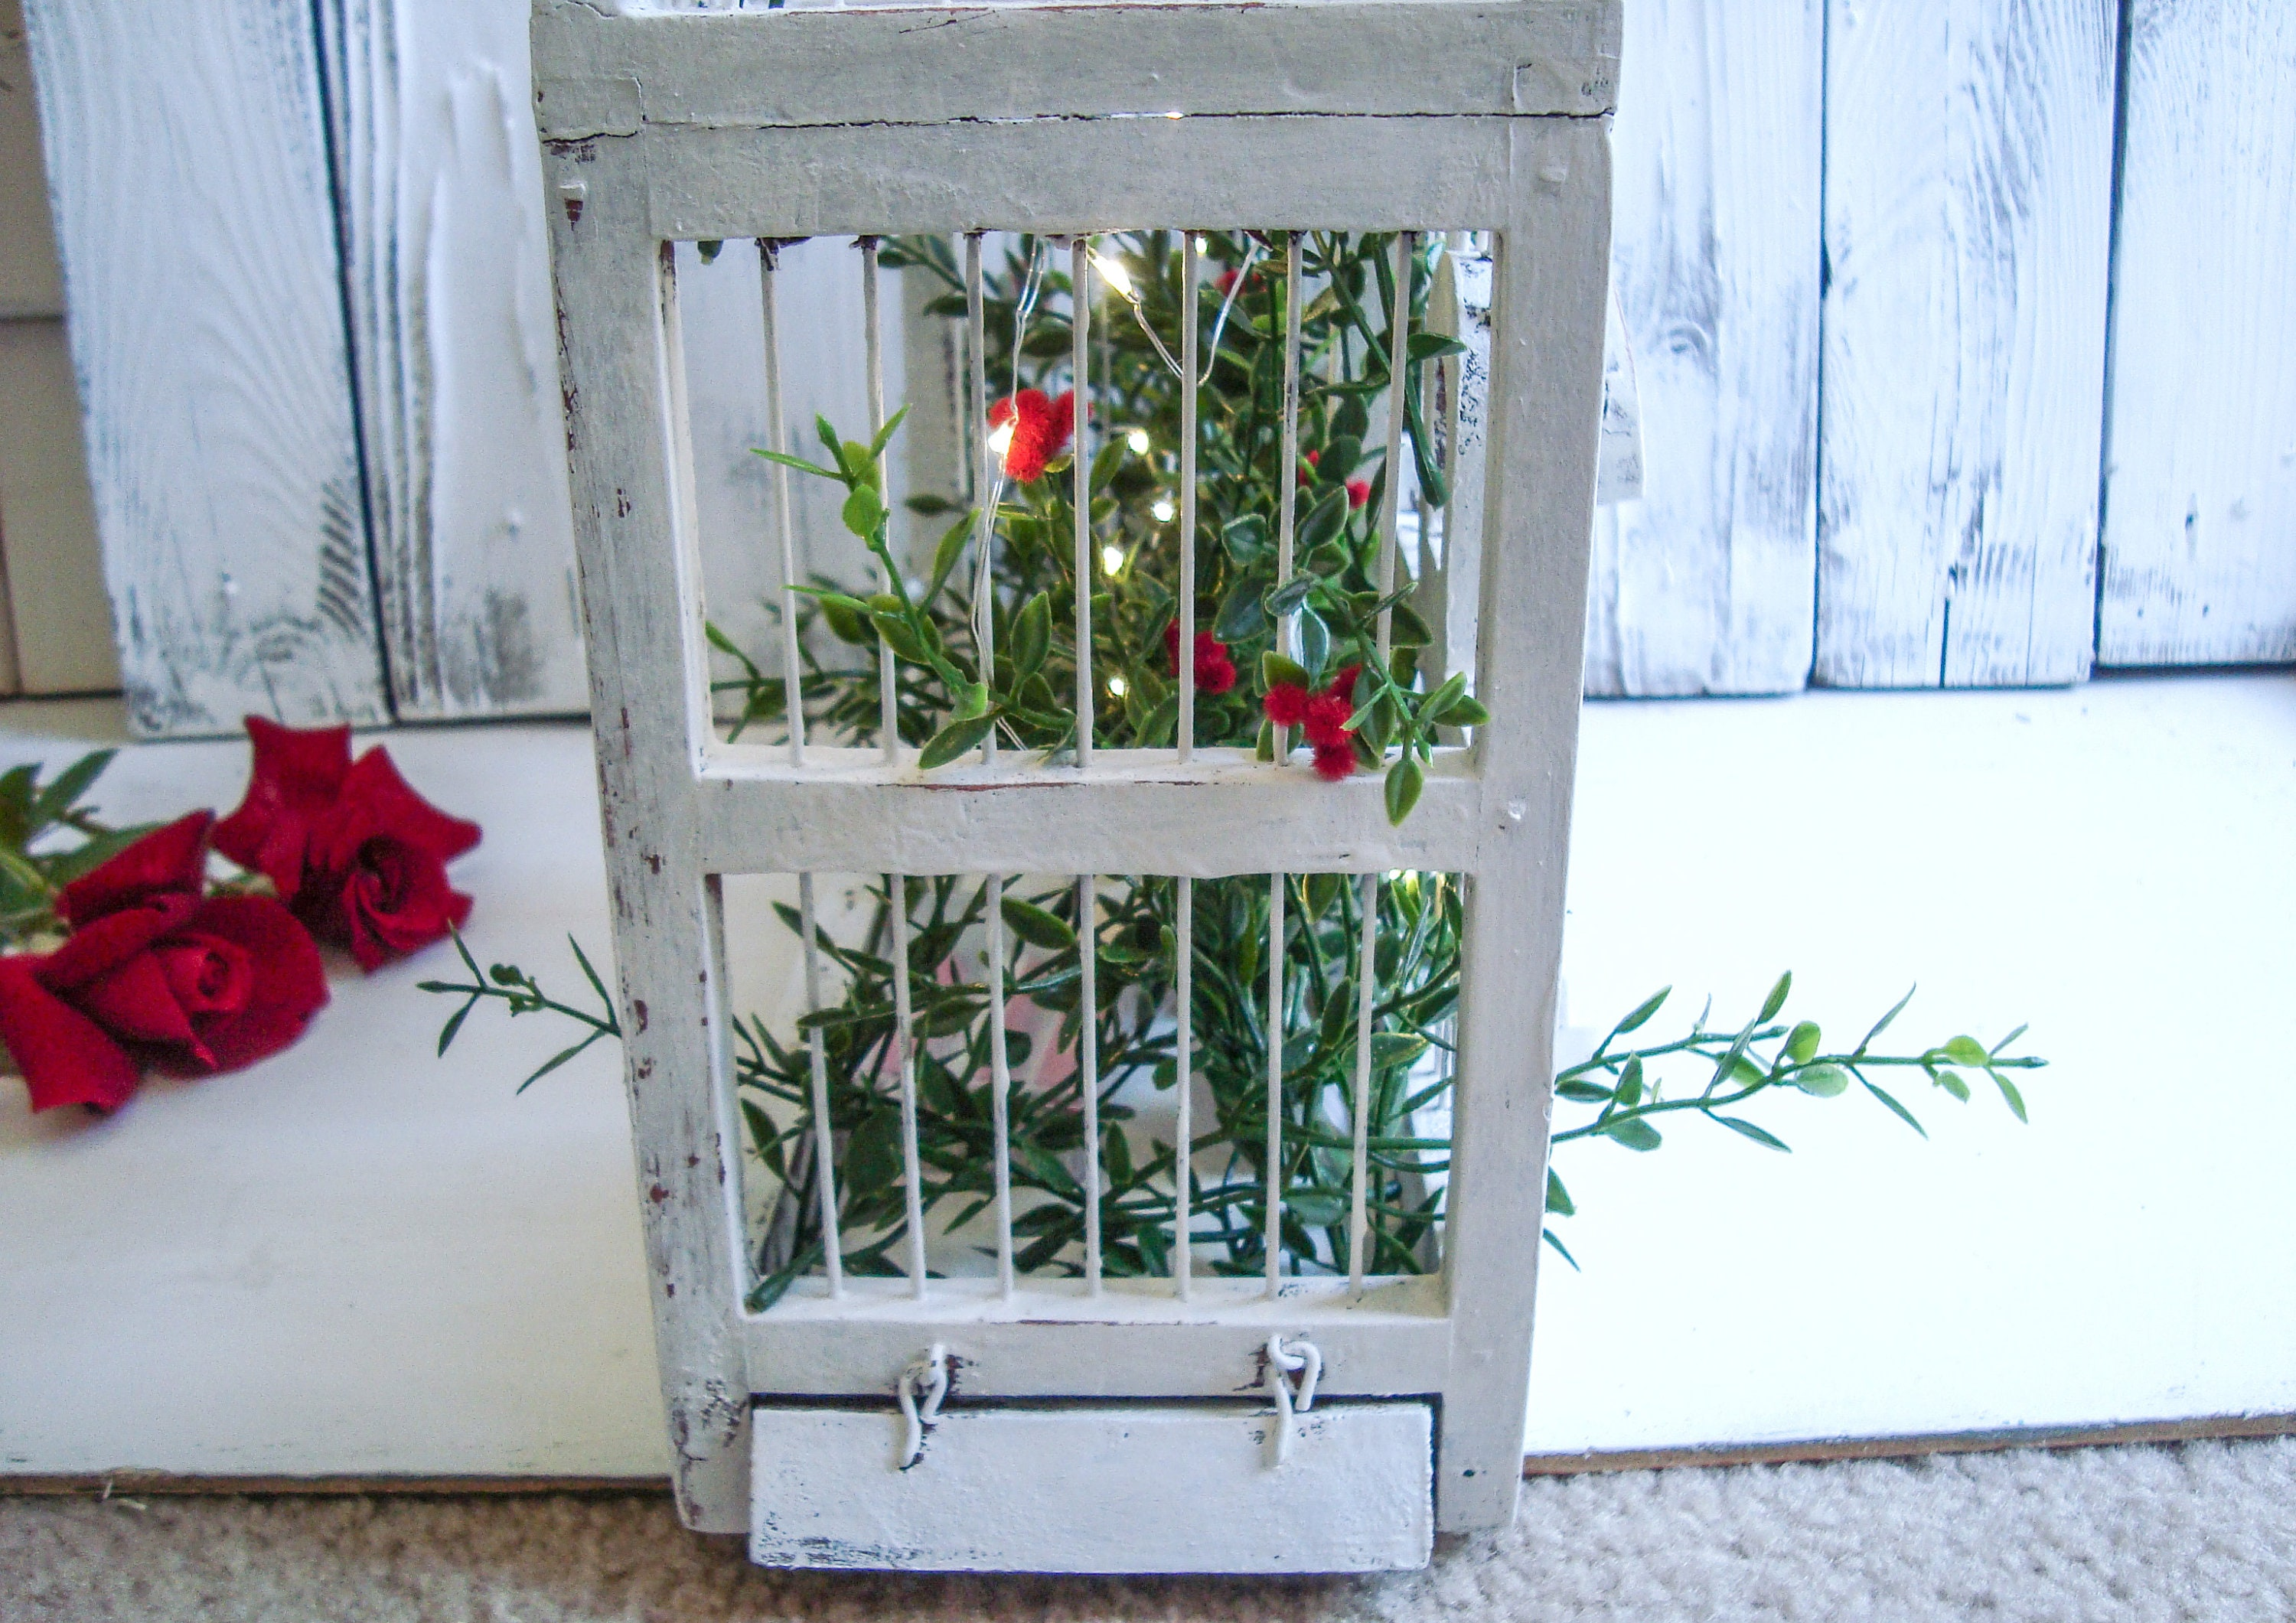 vintage white birdcage dome birdcage wedding centerpiece christmas decor rustic farmhouse decor large birdcage with lights and greenery